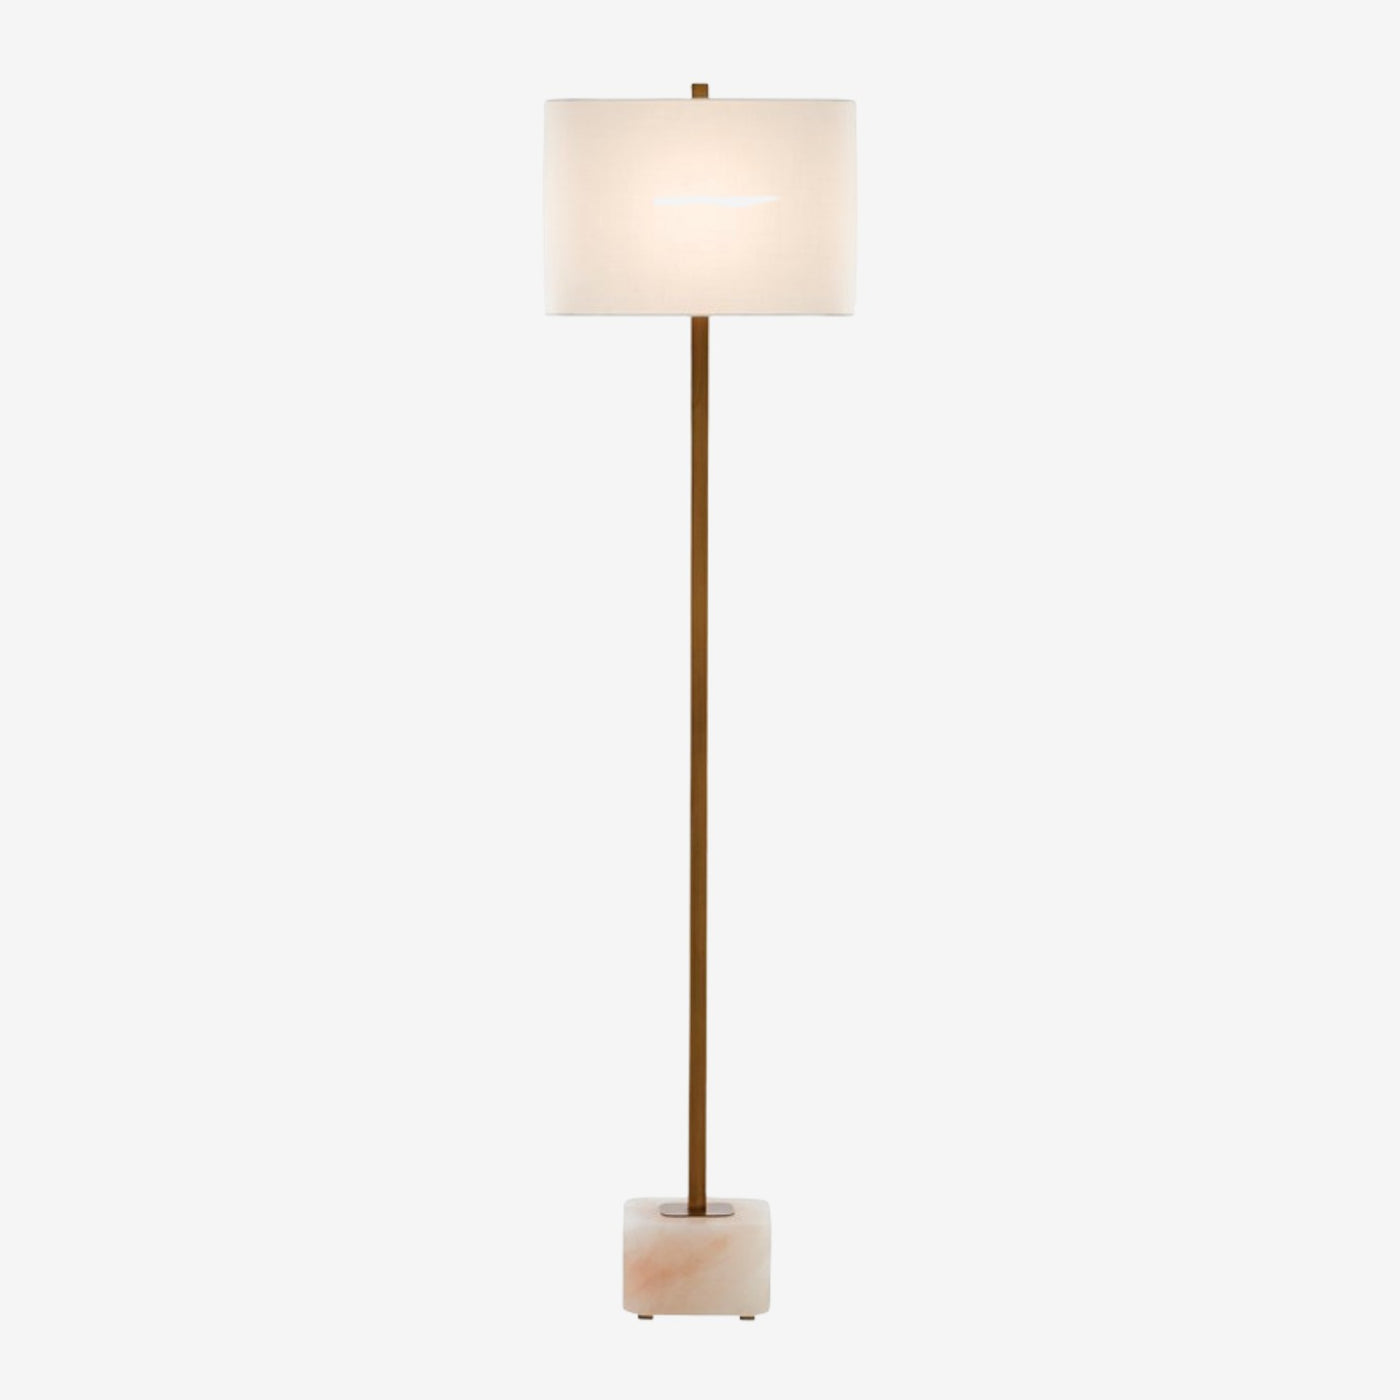 Stanhope Floor Lamp